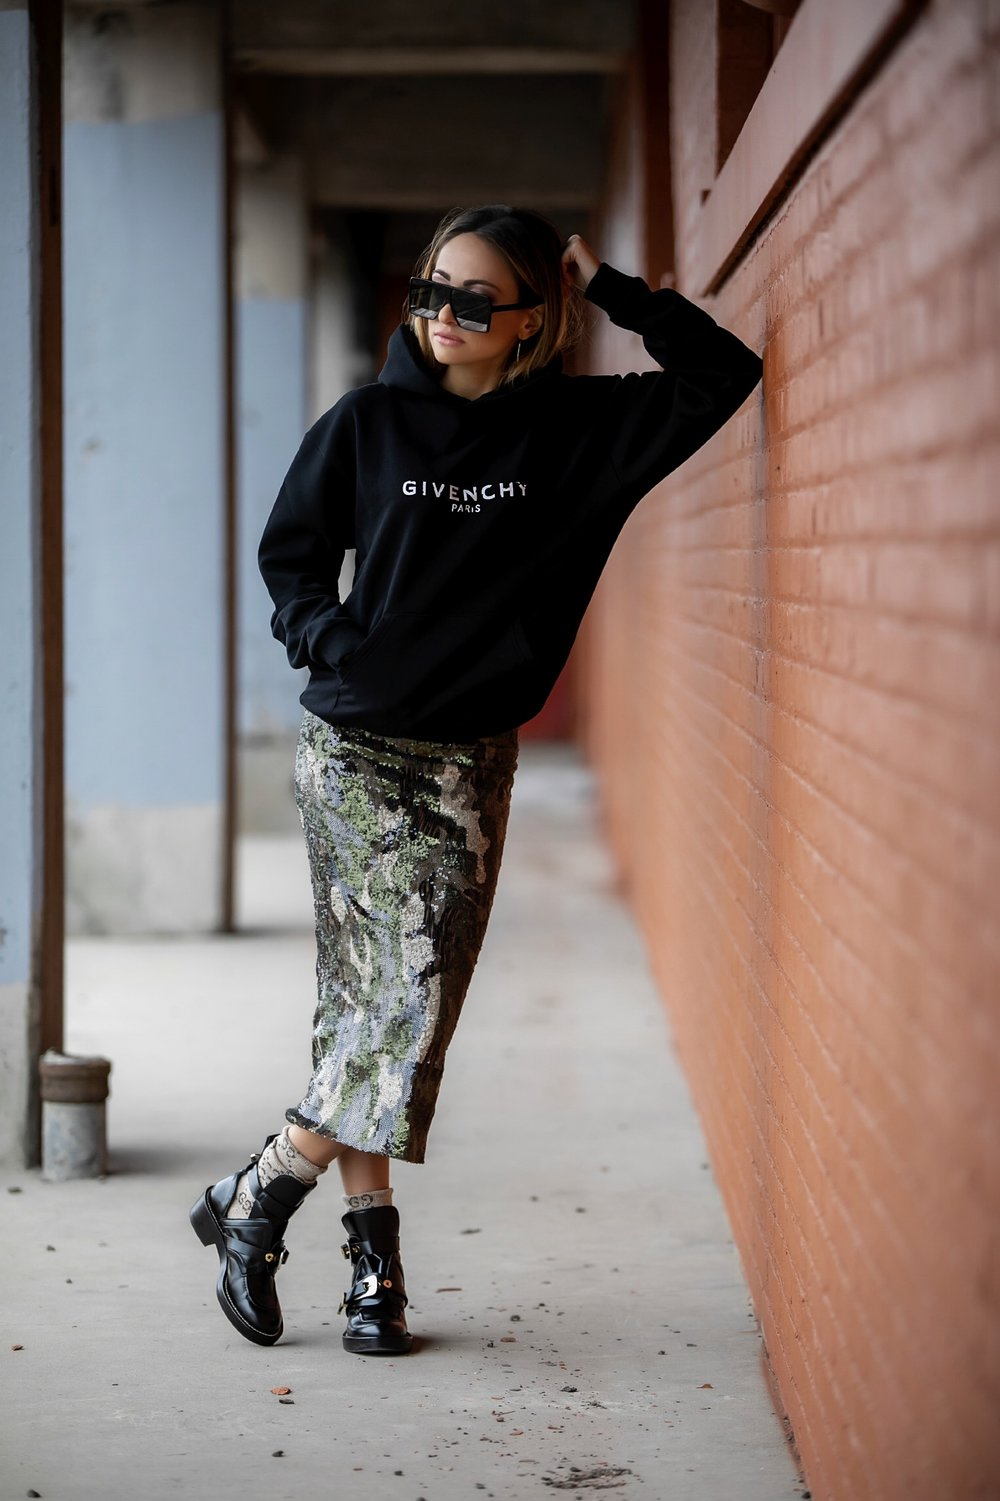 Lauren Recchia nyc streetstyle blogger in Givenchy sweatshirt, Le Superbe sequin skirt, and Balenciaga boots